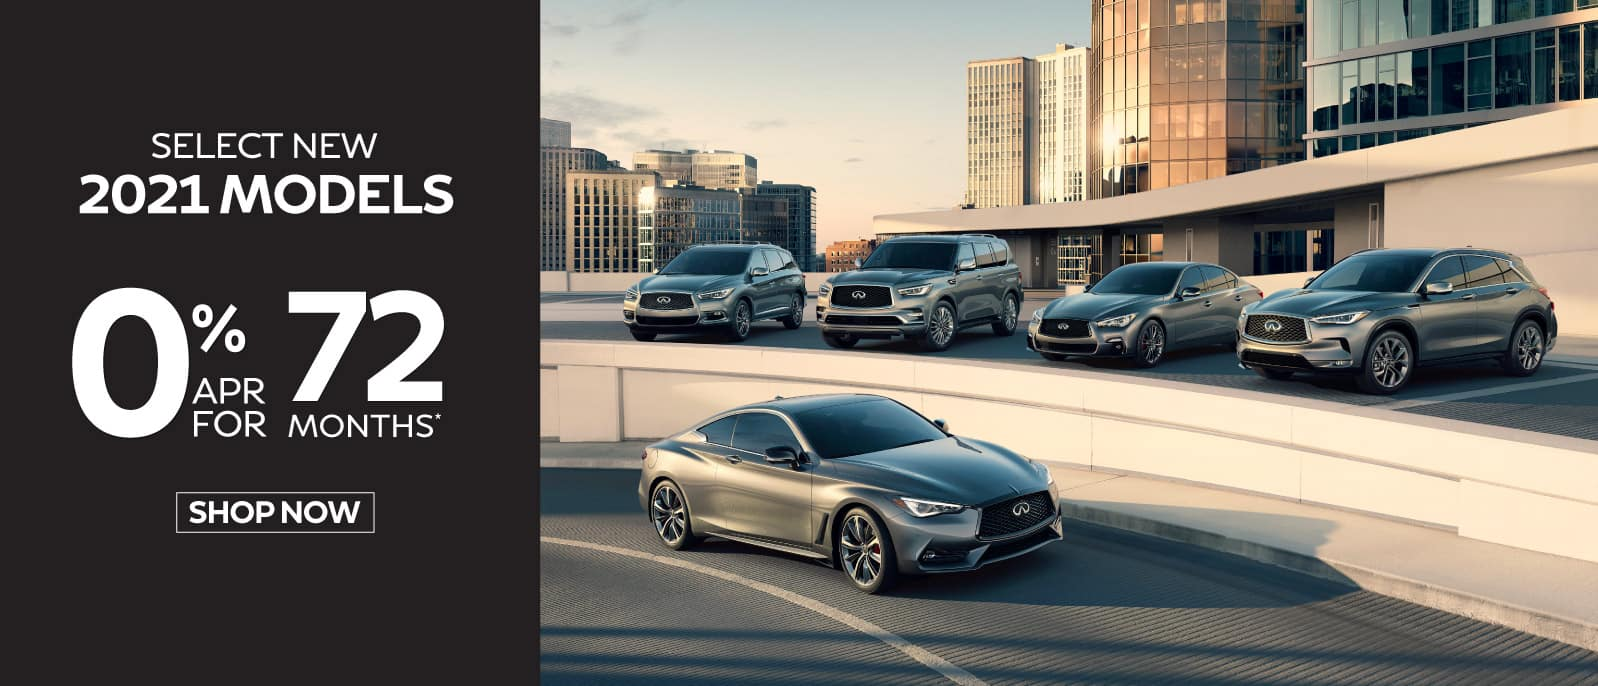 Select new 2021 Models 0% APR for 72 months